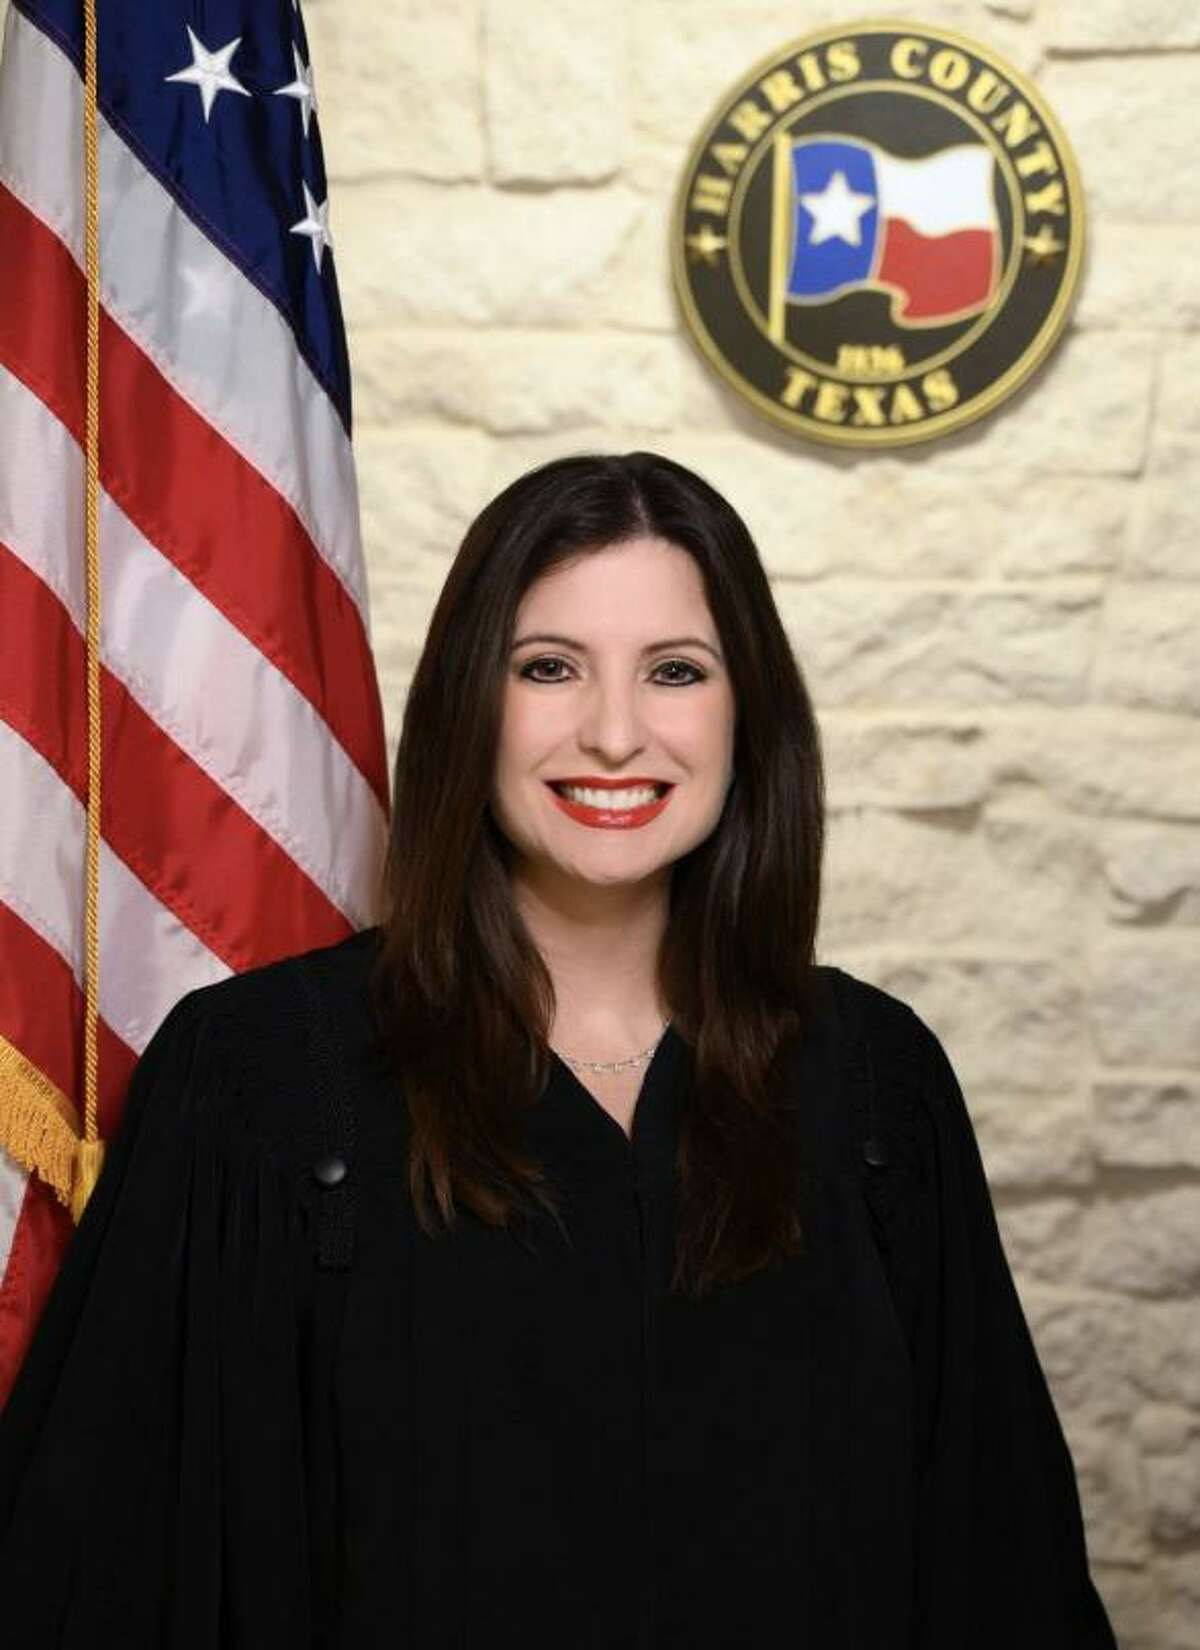 Harris County Civil Court at Law No. 4 Judge Lesly Garcia Mitchell Briones founded the organization Texas Latinx Judges.